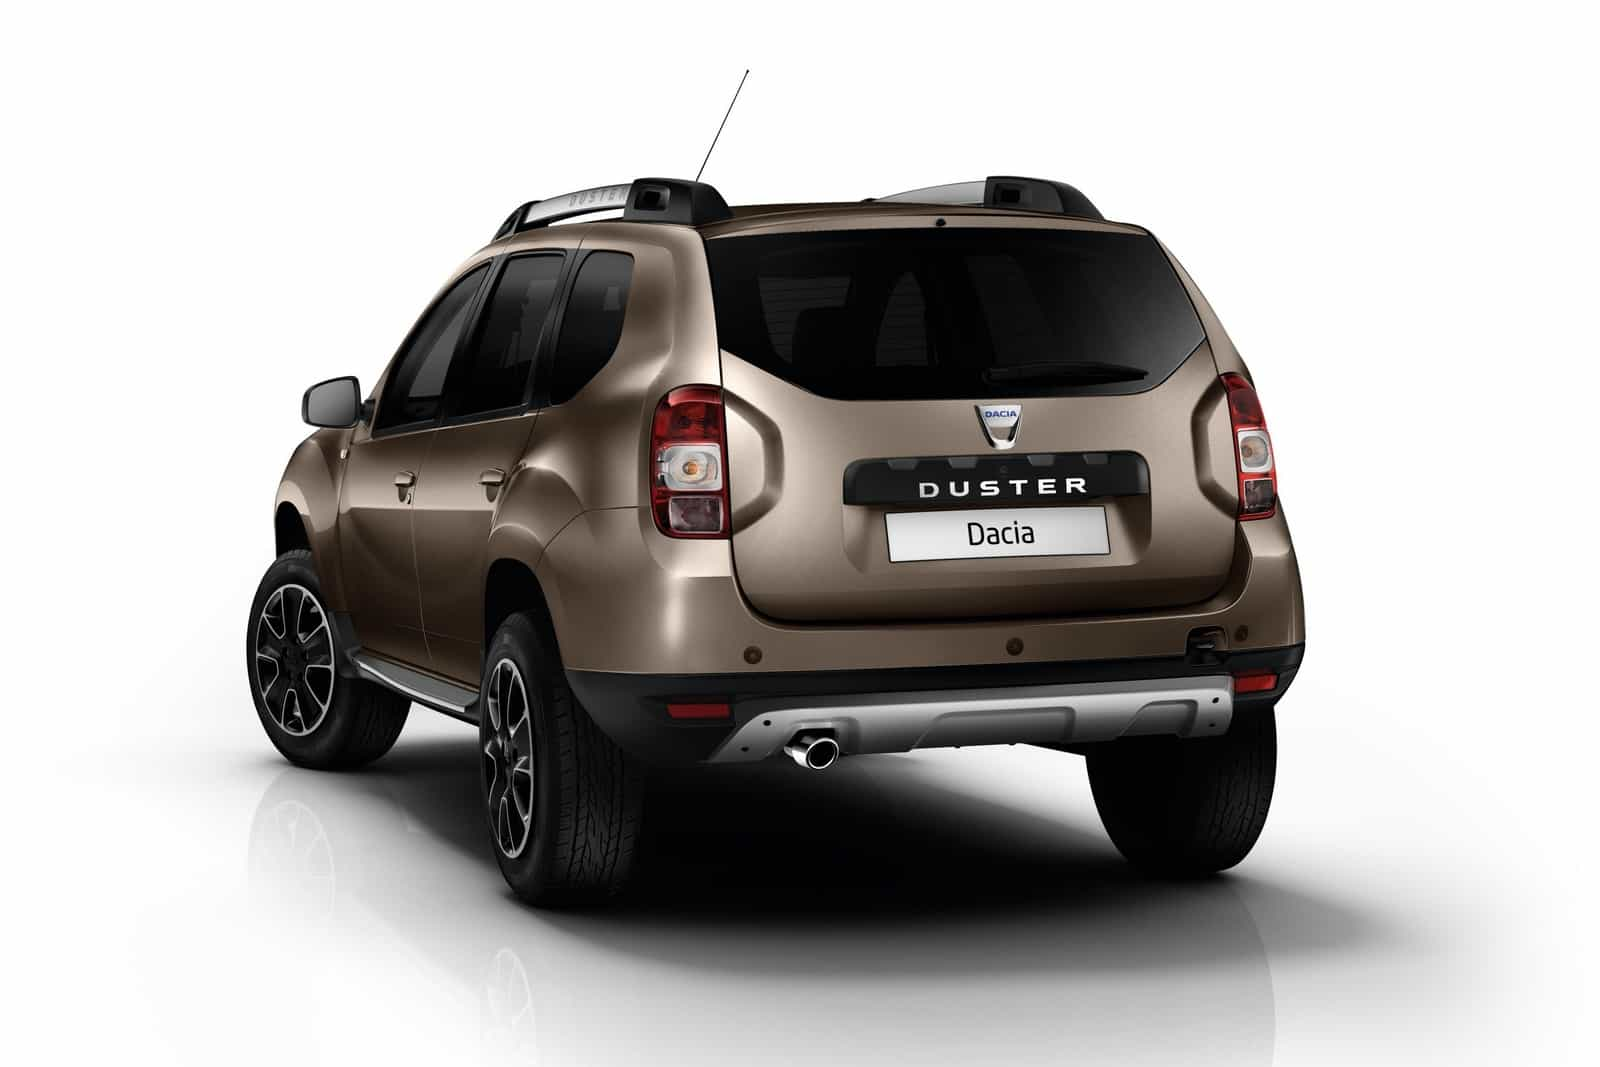 pa 2016 dacia duster s automatem a facelift pro sandero i logan. Black Bedroom Furniture Sets. Home Design Ideas